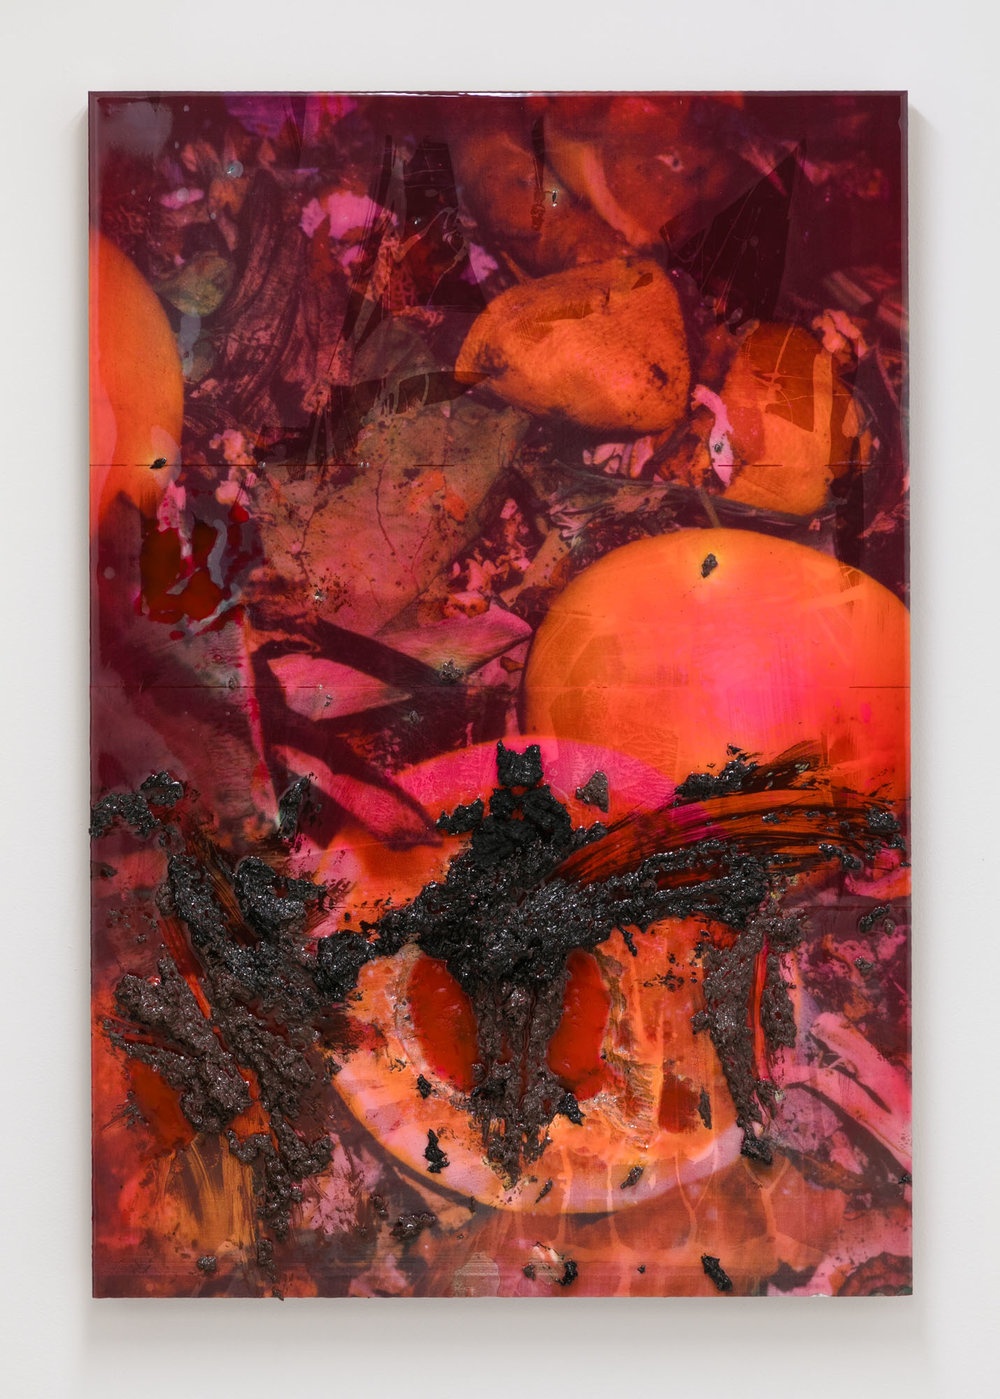 Borden Capalino   Like the cross between men and birds , 2017  UV print, silicone, rice, soil, acrylic polymer, and pigmented resin on polystyrene  44 x 30 x 2 inches